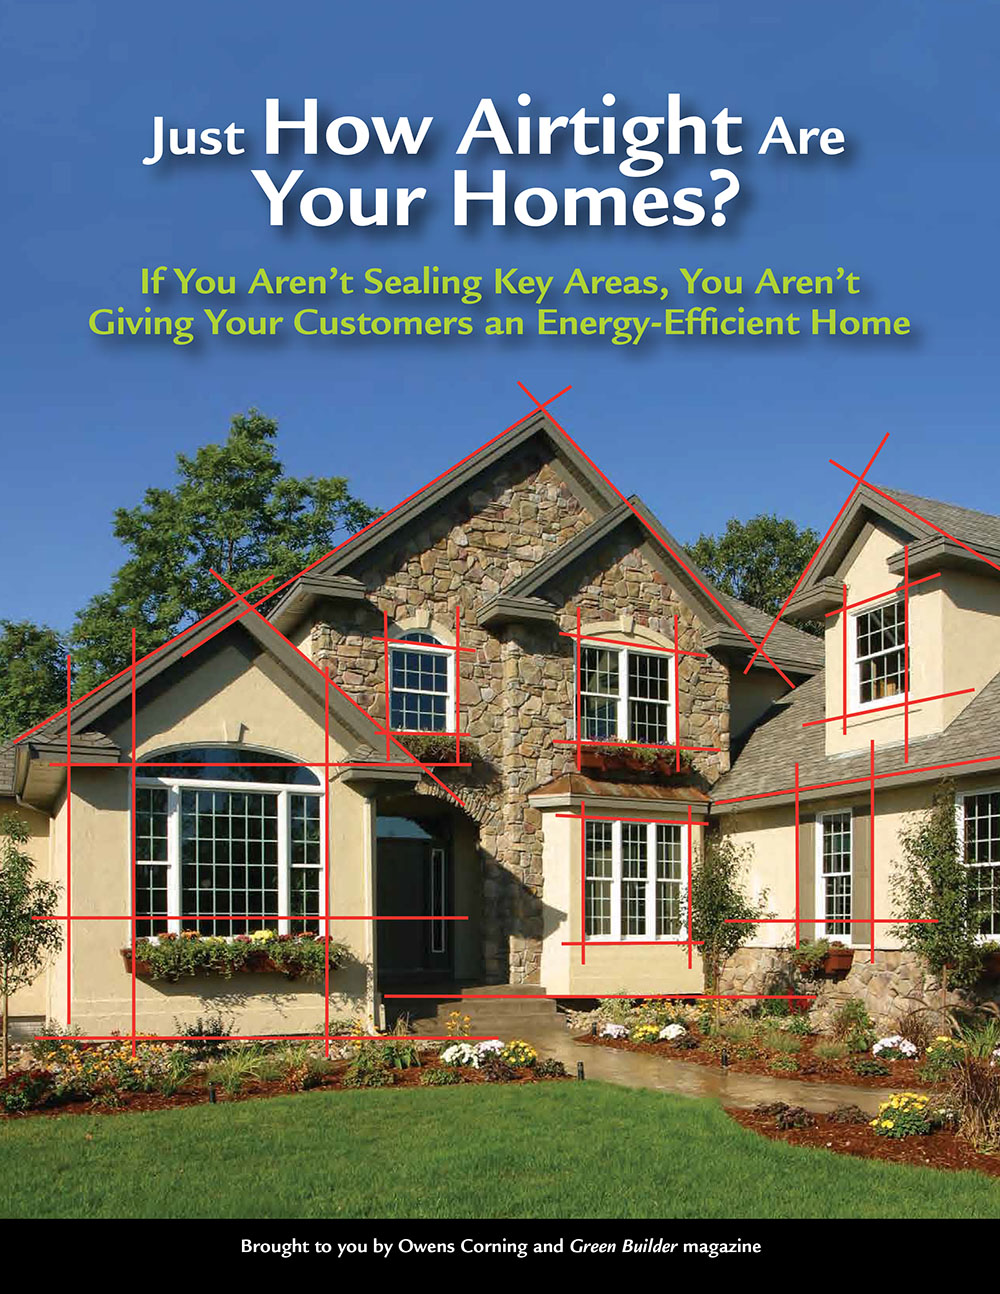 Air Sealing Ebook from Owens Corning